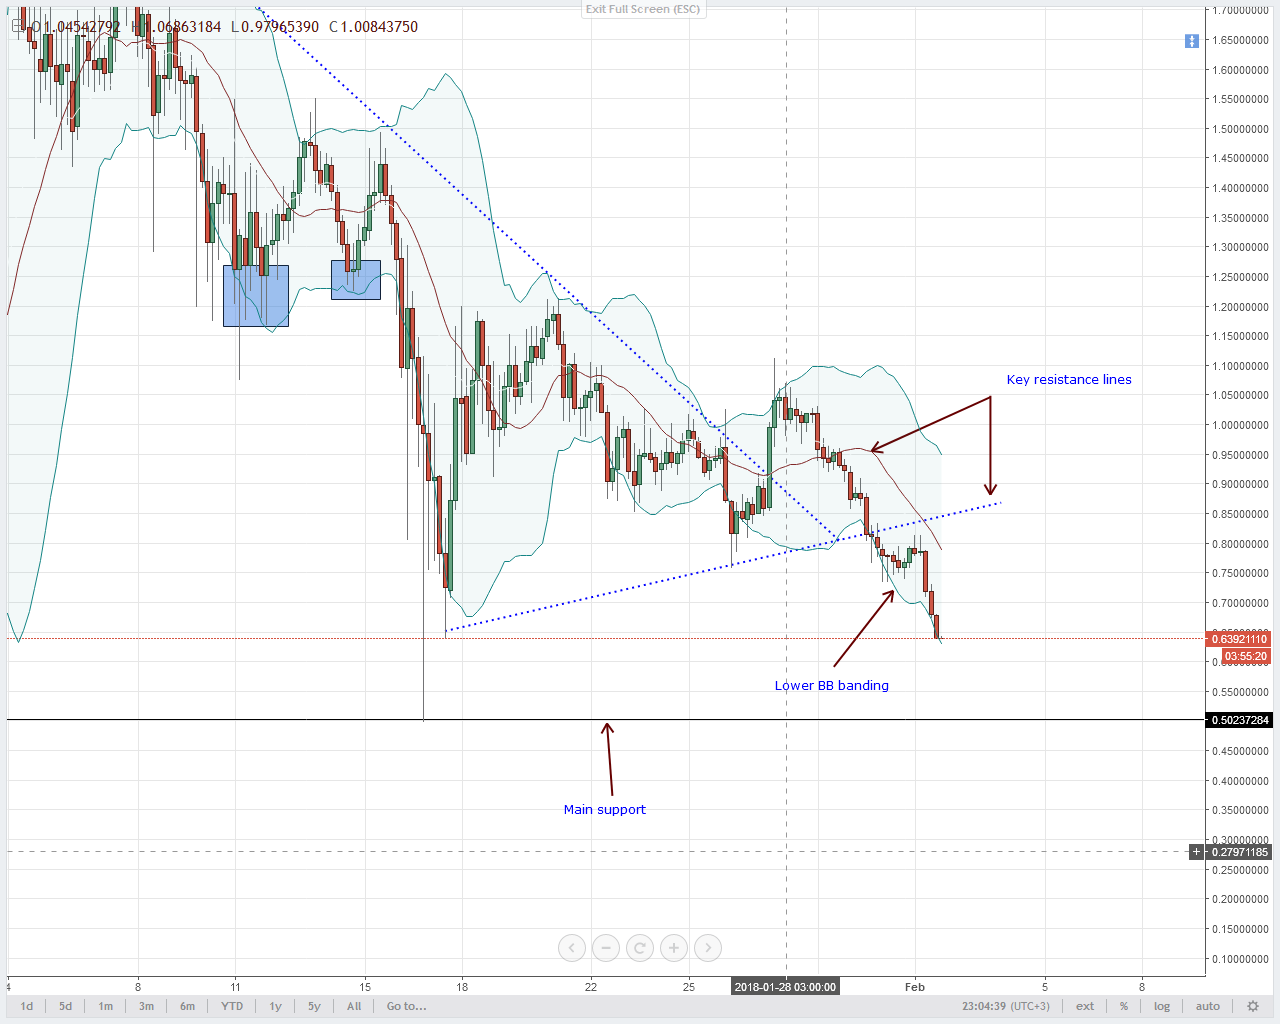 NEM Tehnical Analysis prices at support